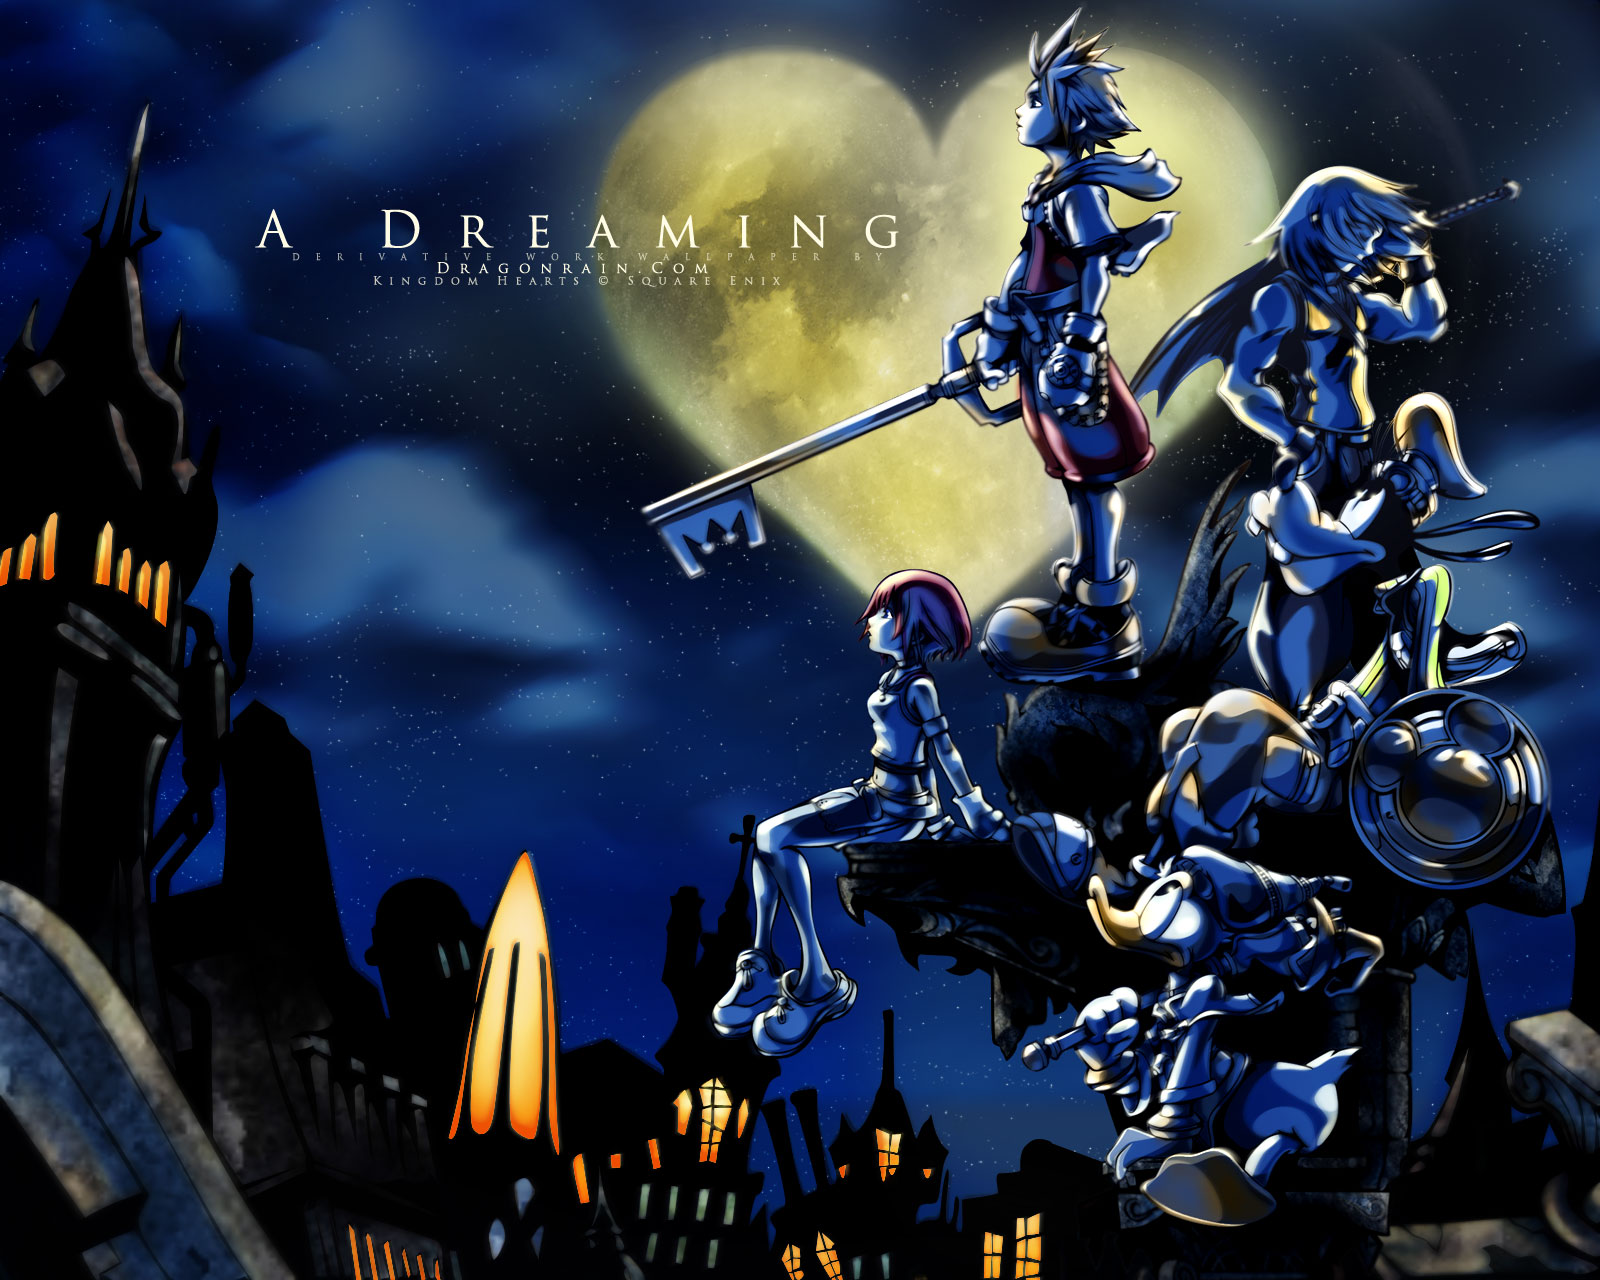 kingdom hearts images - photo #3